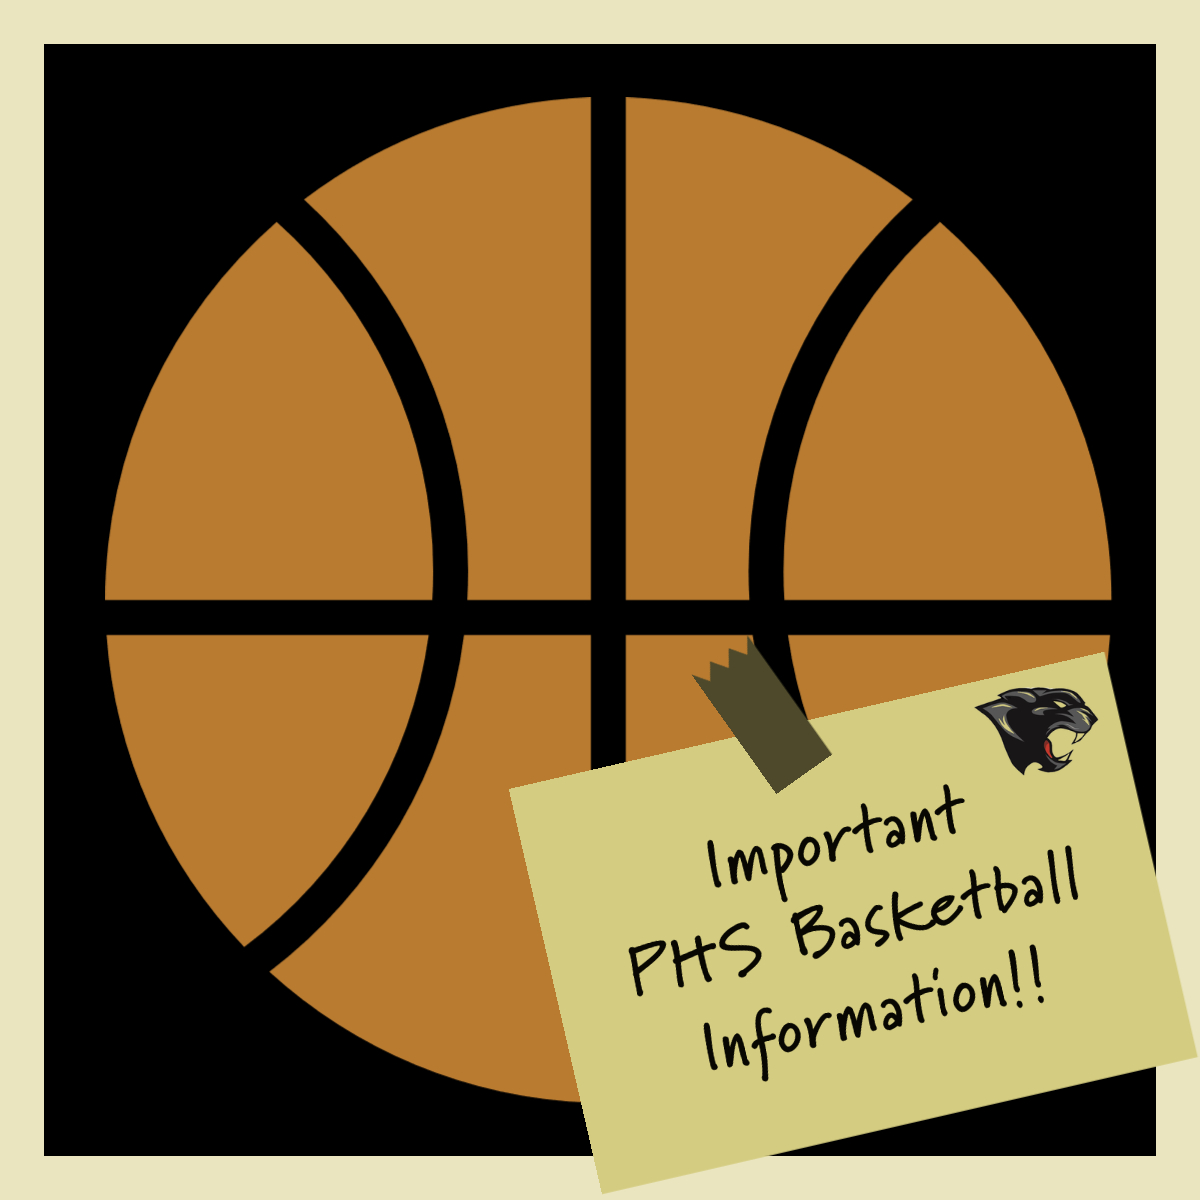 Girls Sub State Basketball Information for Wednesday, March 3 at Paola vs Ft. Scott